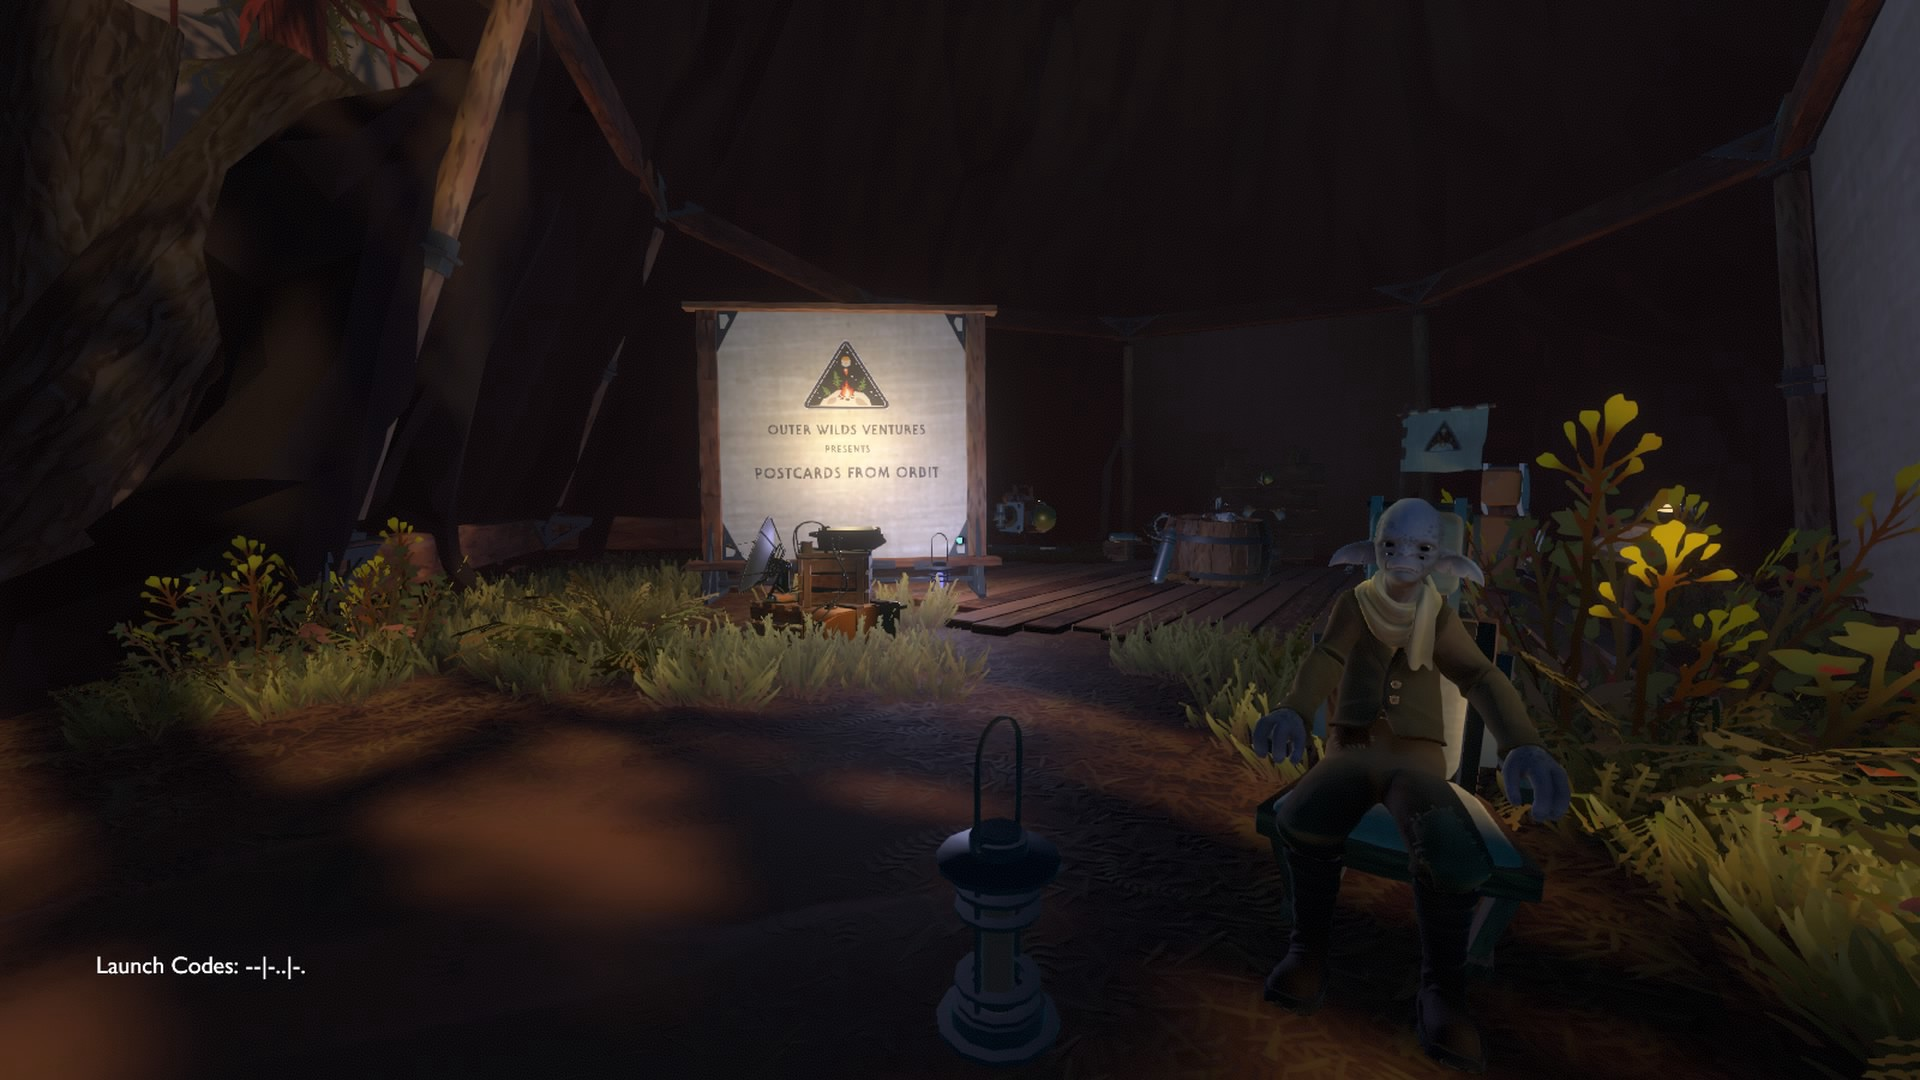 In game screenshot of sign that reads: Outer Wilds Ventures Presents Postcards From Far Away.